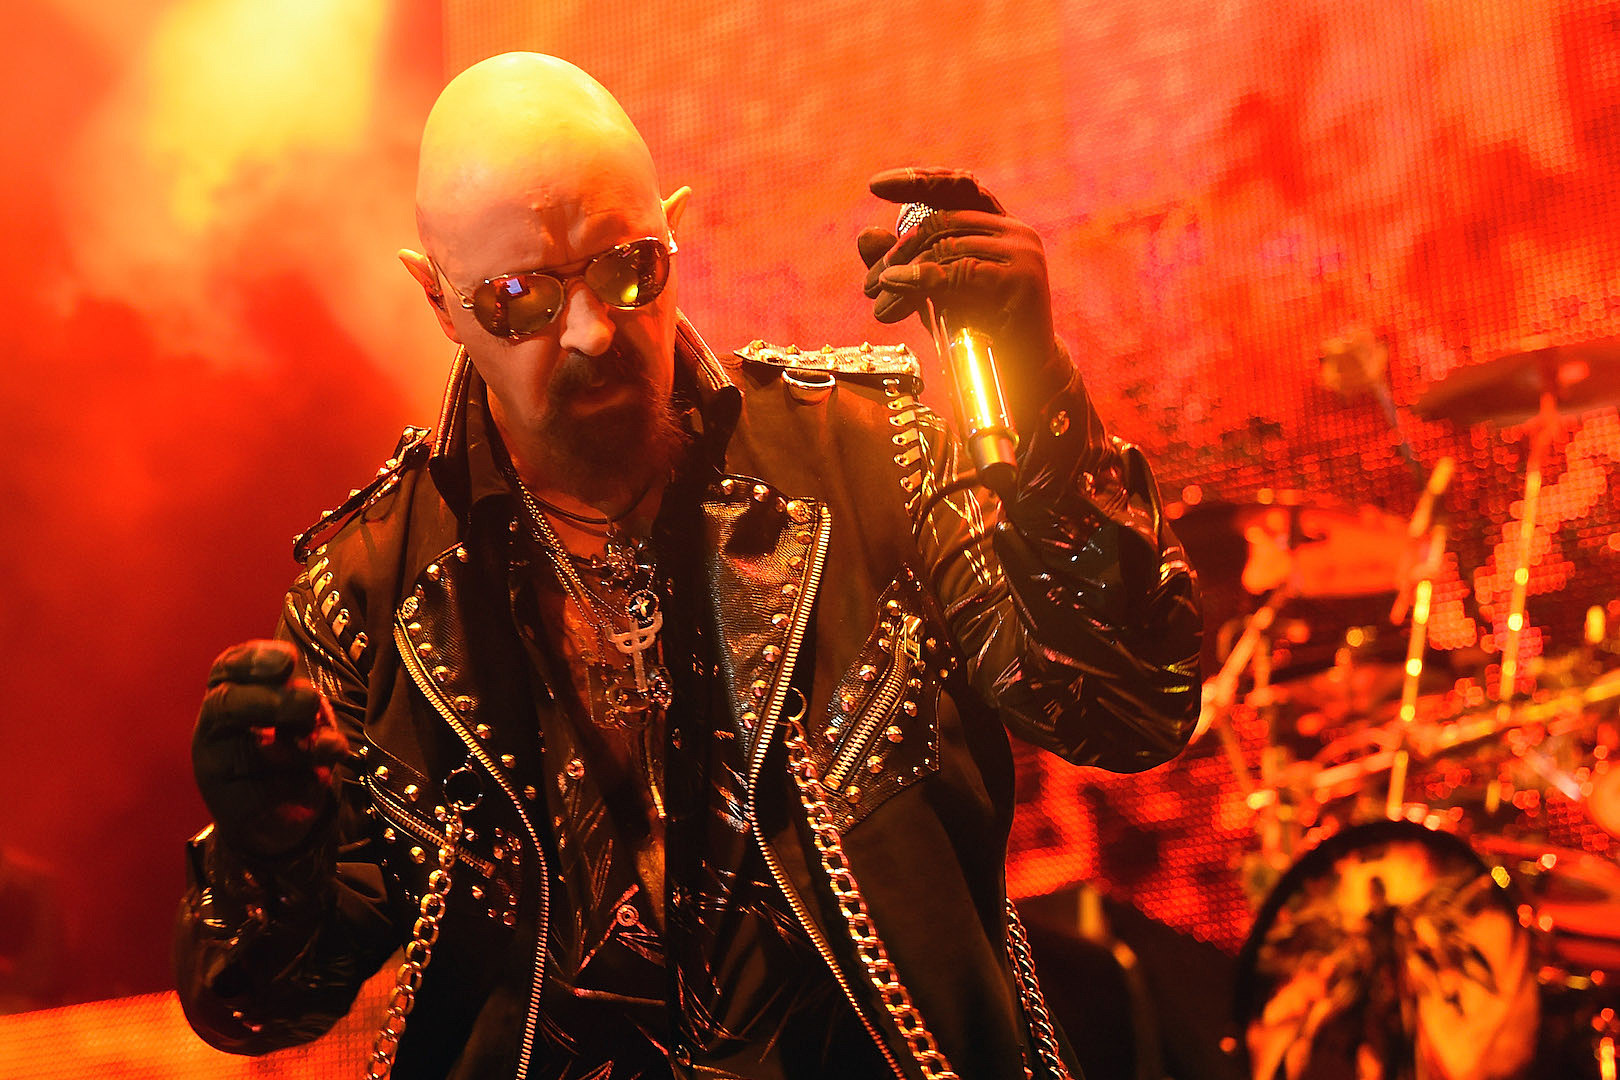 judas priest announce 2019 headlining tour